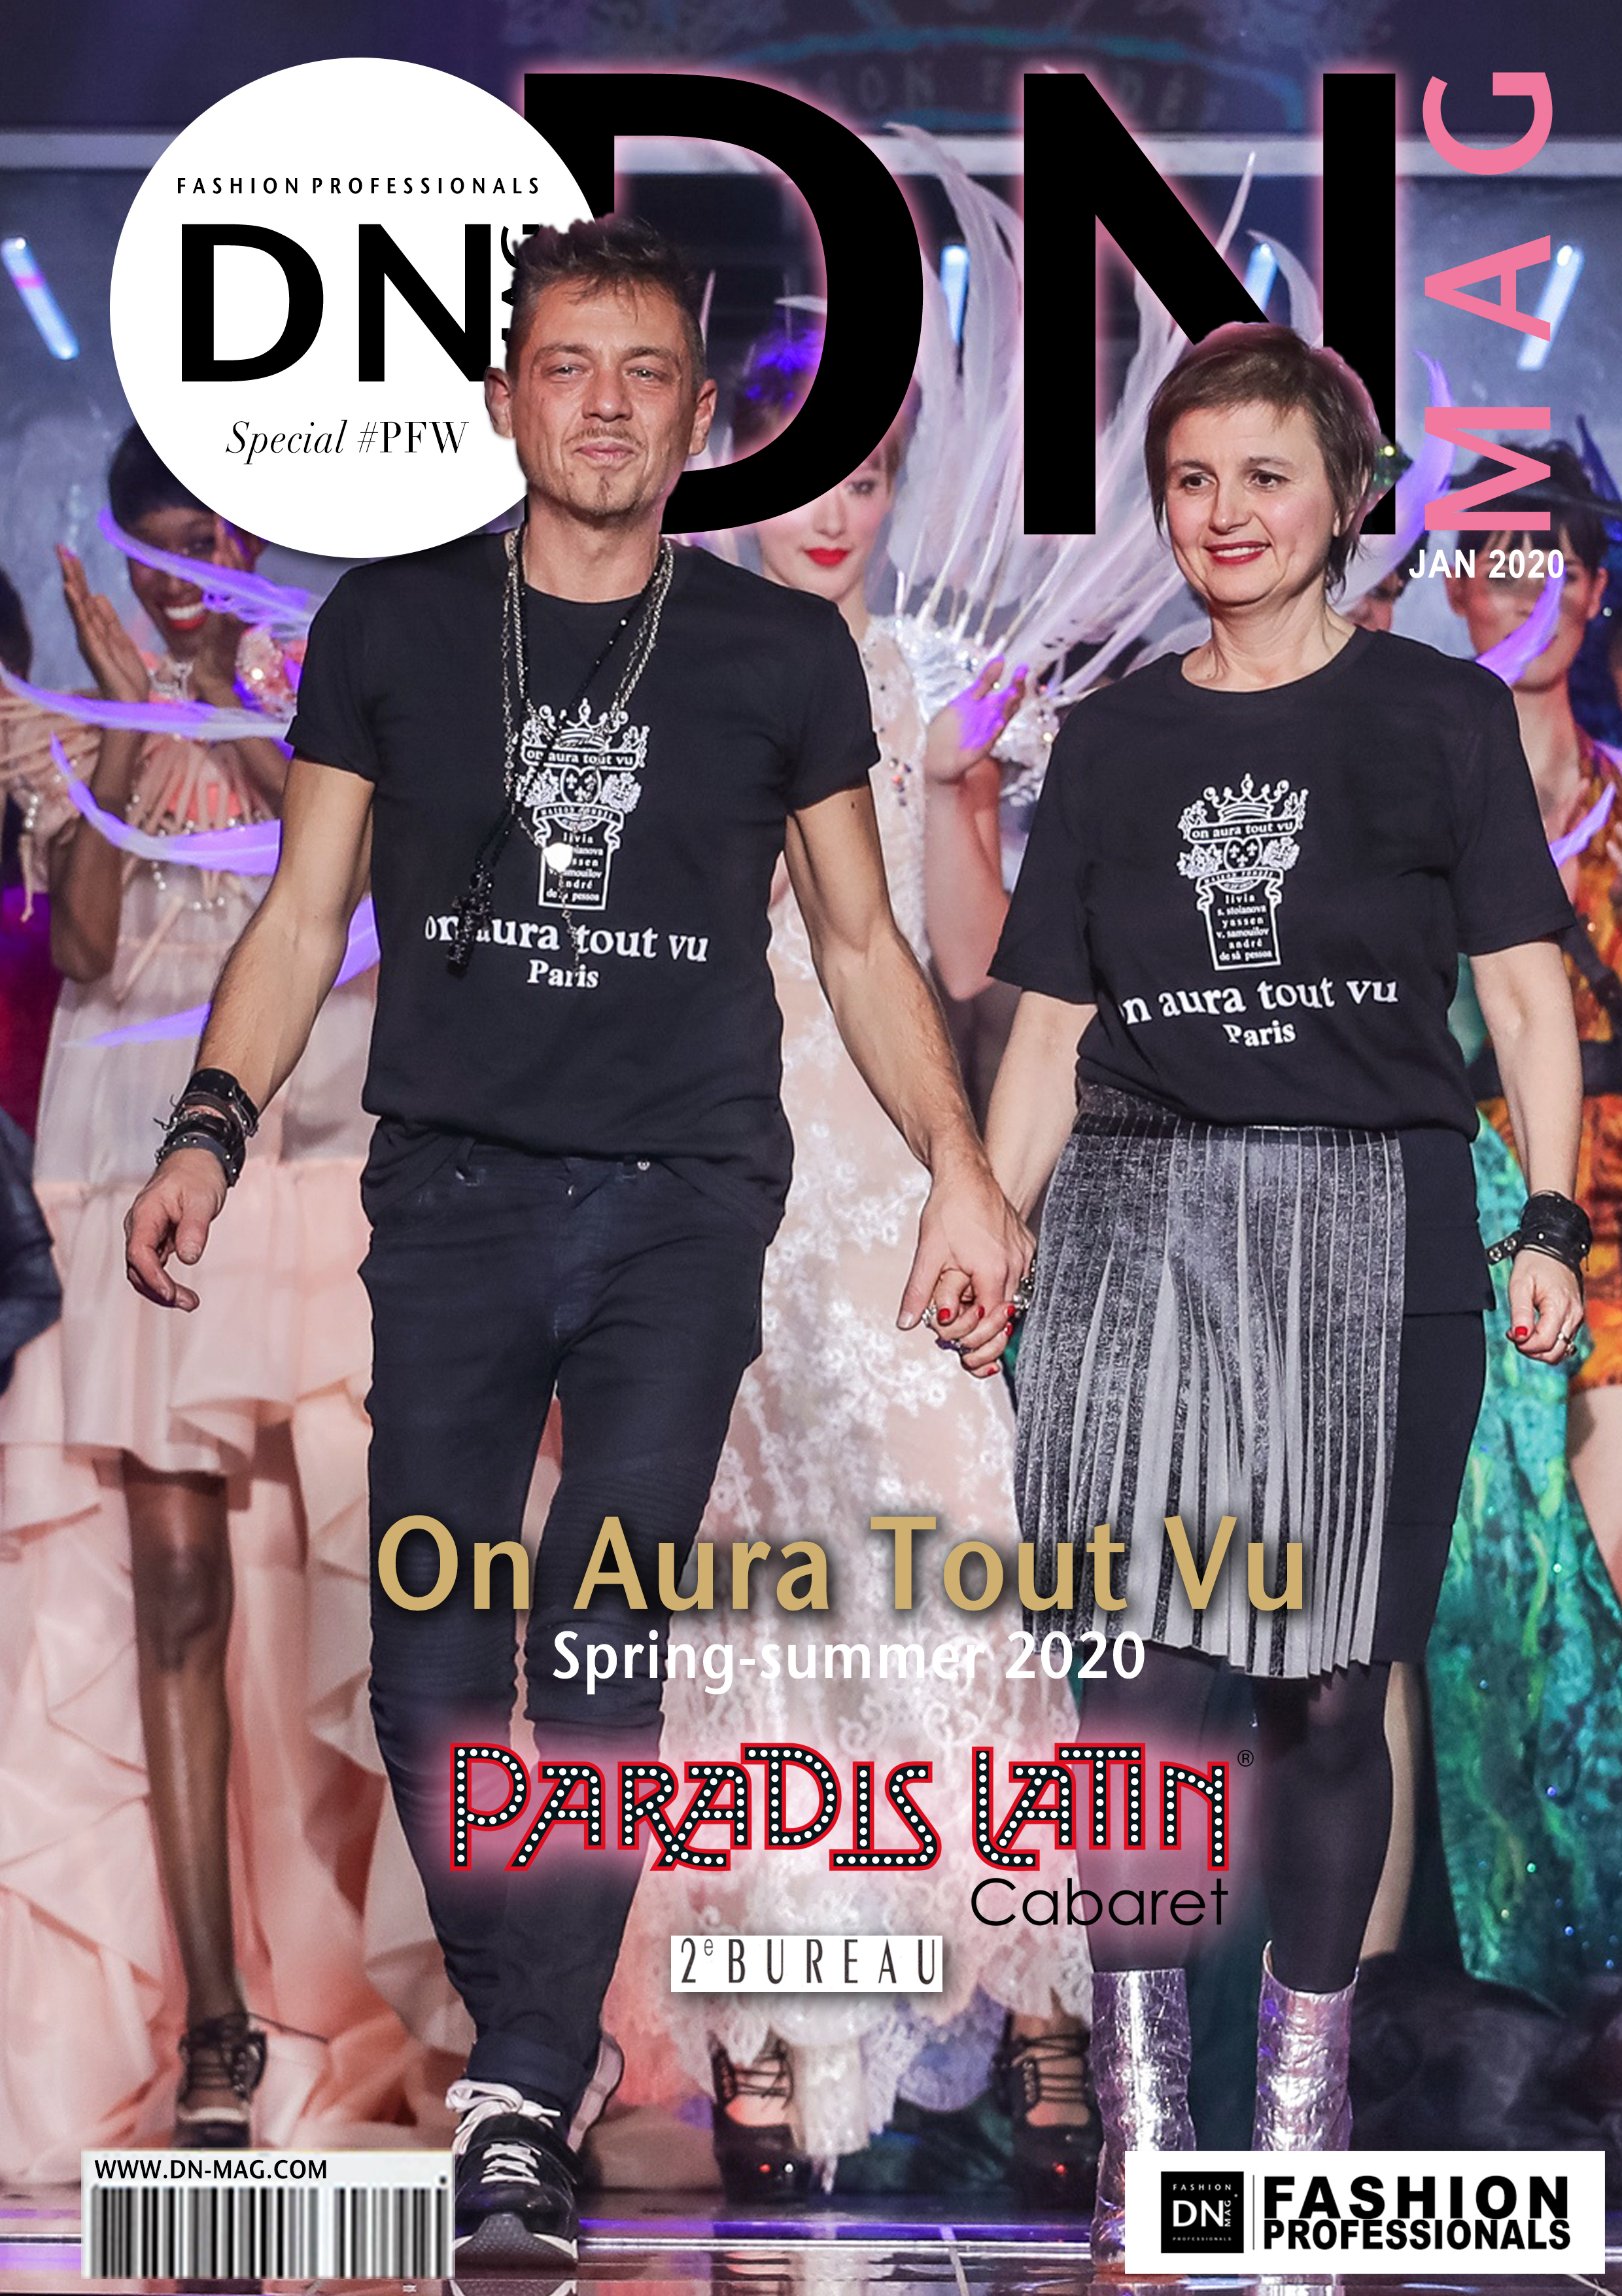 Fashion Magazine Cover Pages 2019 2020 Dn Mag Com